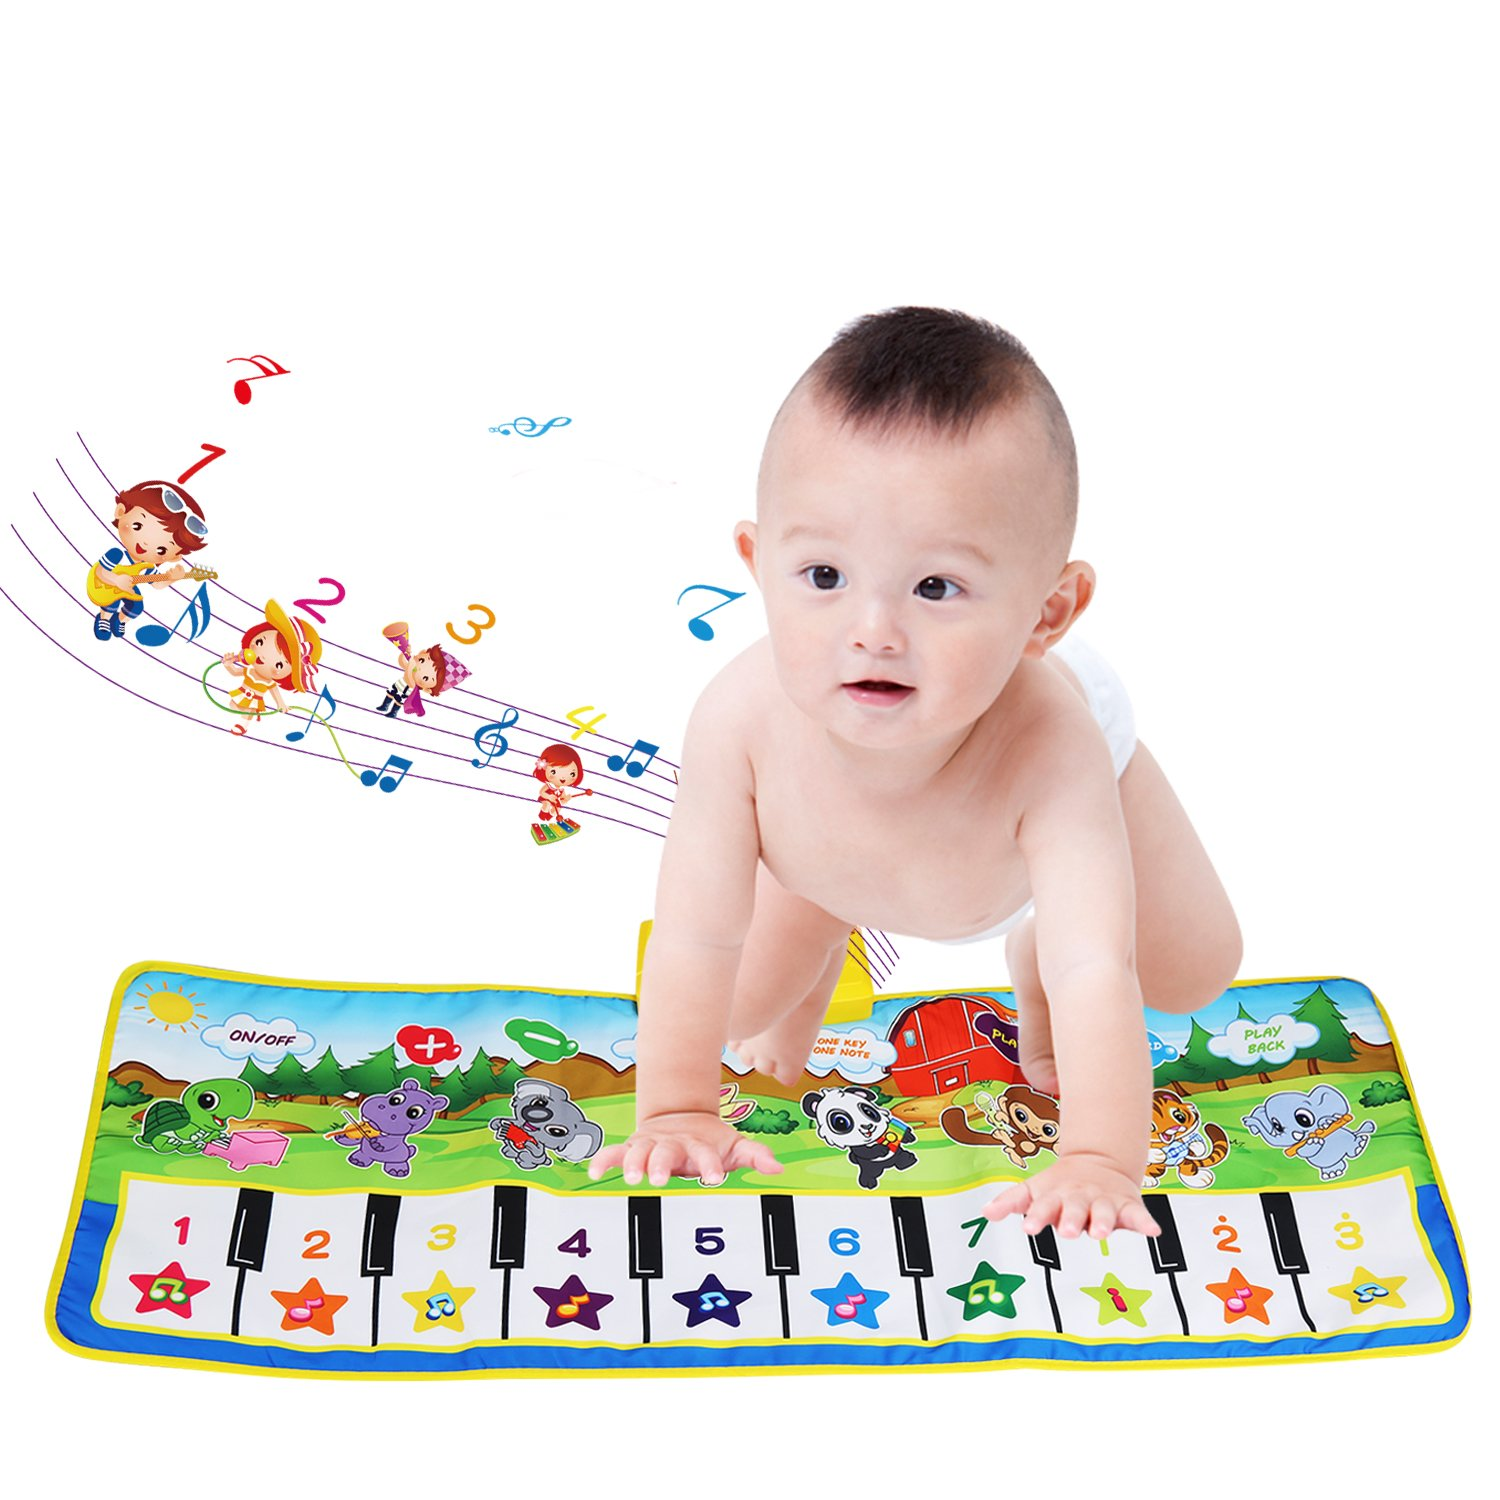 Children's Musical Toys, BELLESTYLE Baby Musical Game Carpet Mat Musical Instrument Toy Touch Play Keyboard Gym Play Mat for Kids (Blue) Children' s Musical Toys